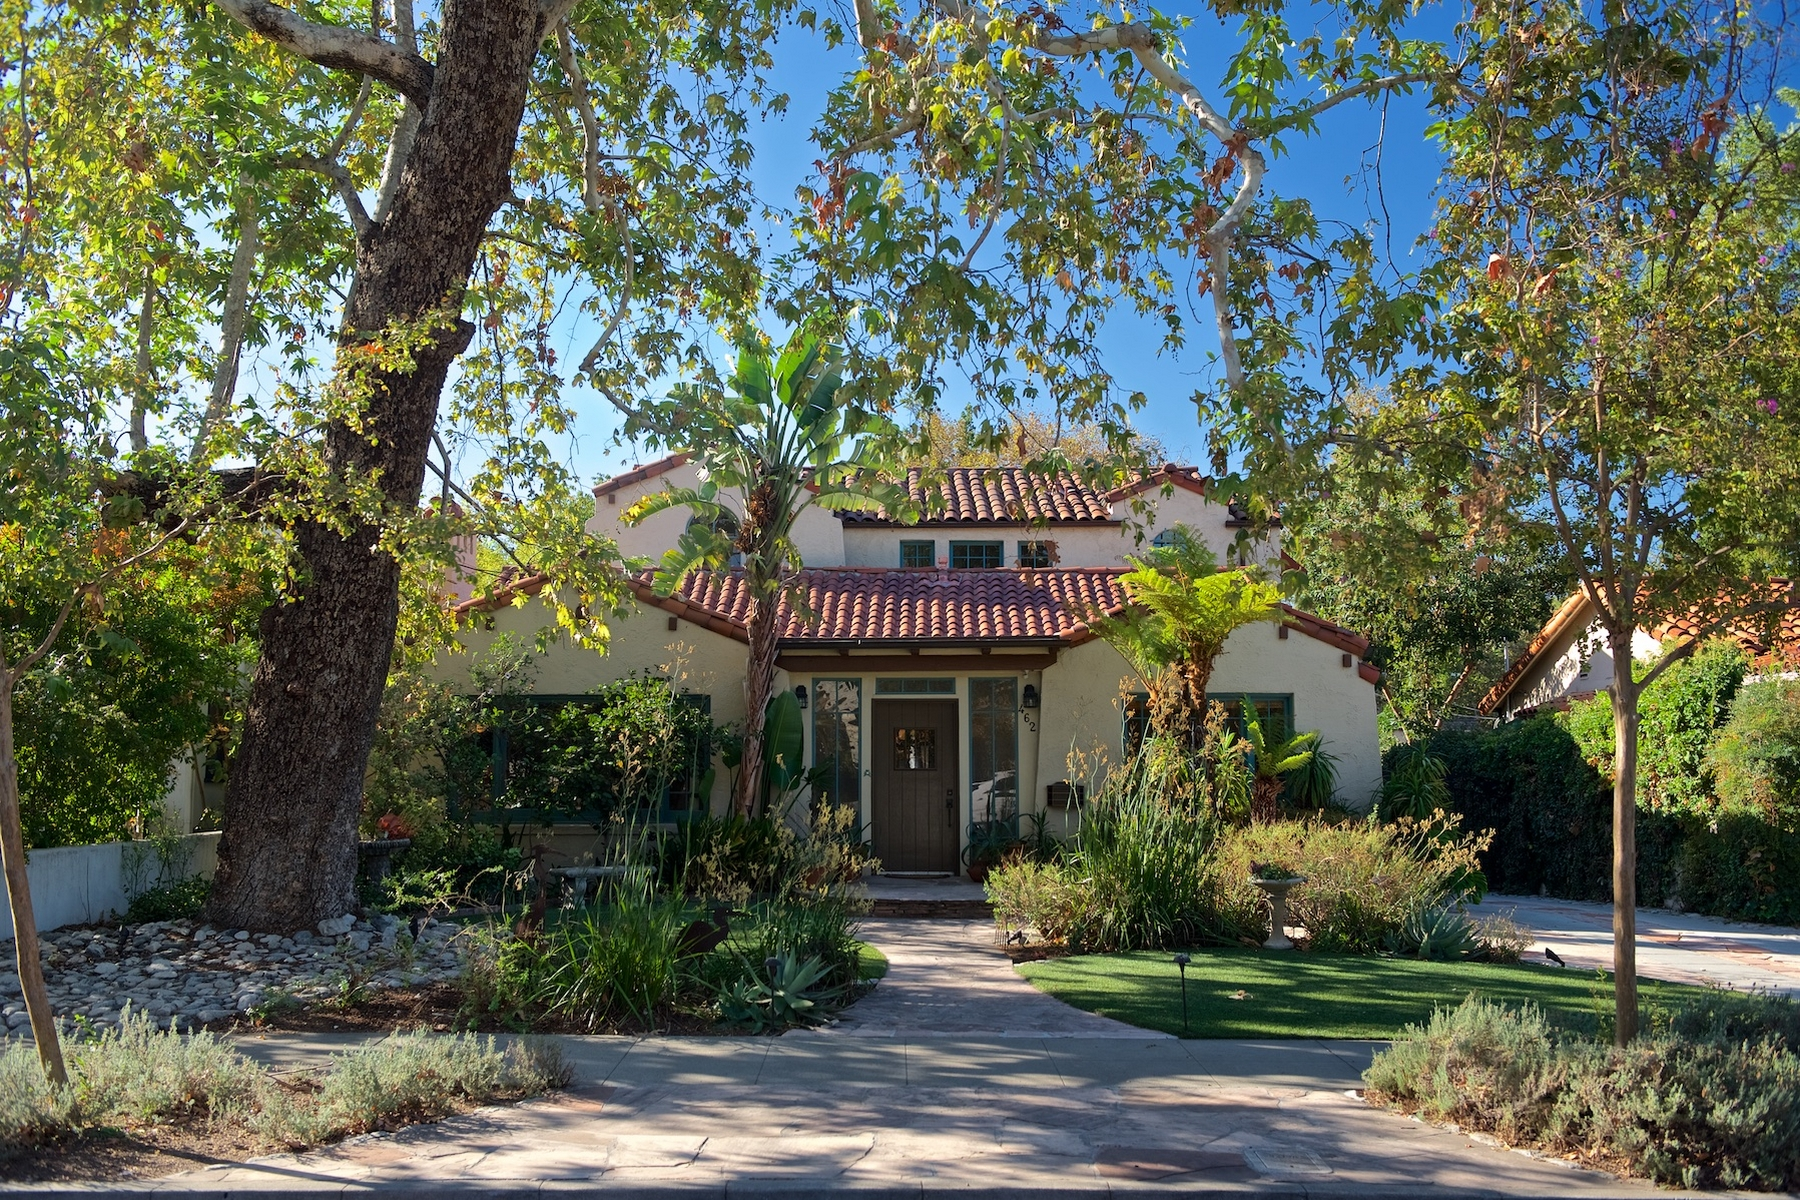 Single Family Home for Sale at 462 Baughman Avenue Claremont, California 91711 United States